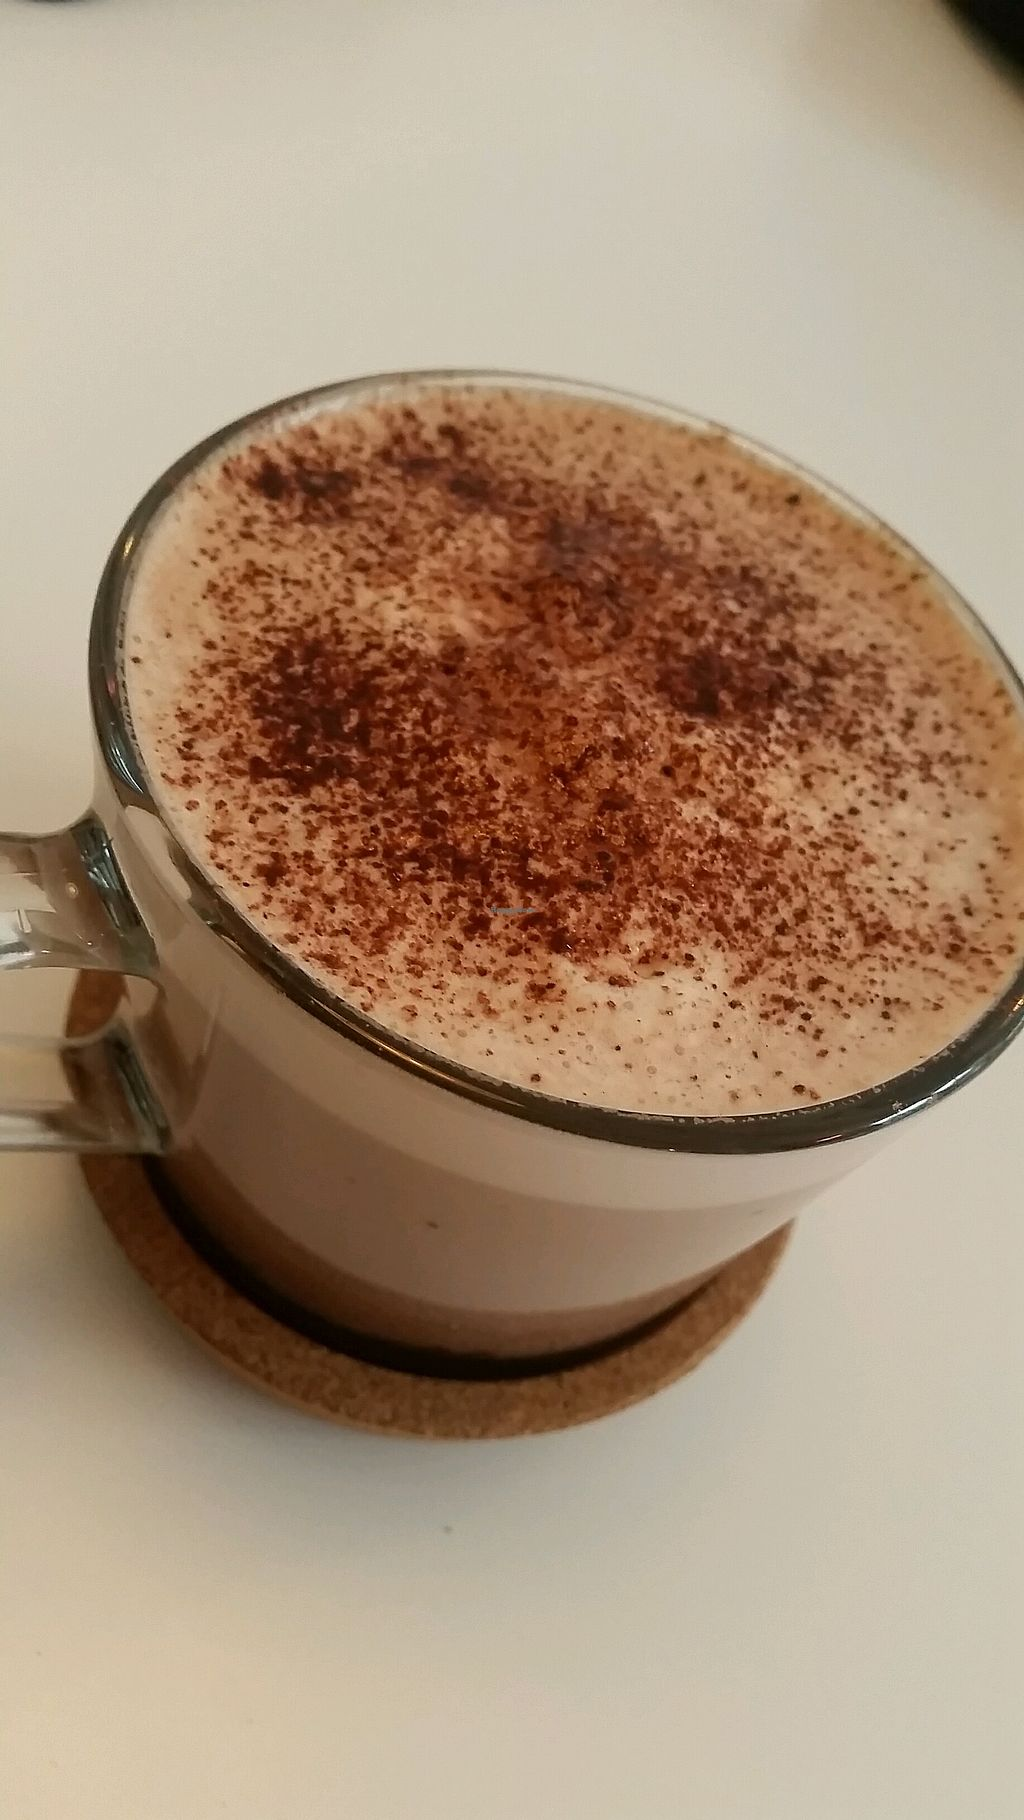 "Photo of Blanche Bakery  by <a href=""/members/profile/konlish"">konlish</a> <br/>hot chocolate <br/> December 18, 2017  - <a href='/contact/abuse/image/79393/336813'>Report</a>"